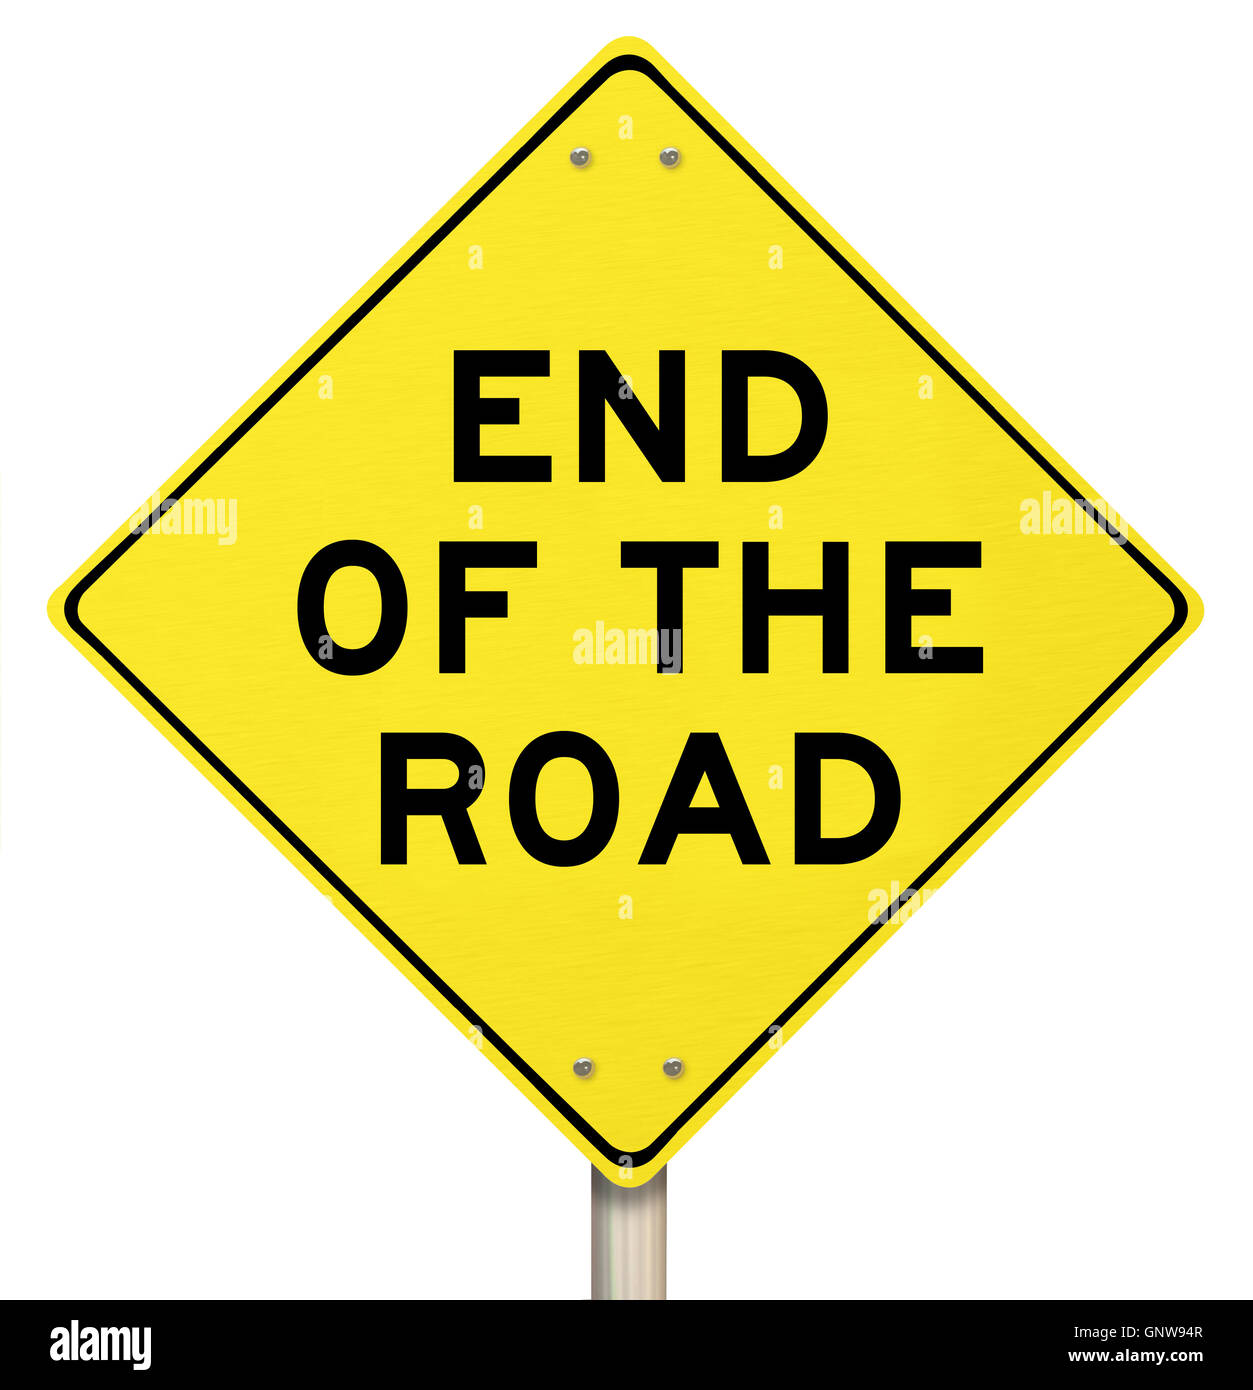 End of the Road Yellow Warning Sign - Last Final Failure - Stock Image